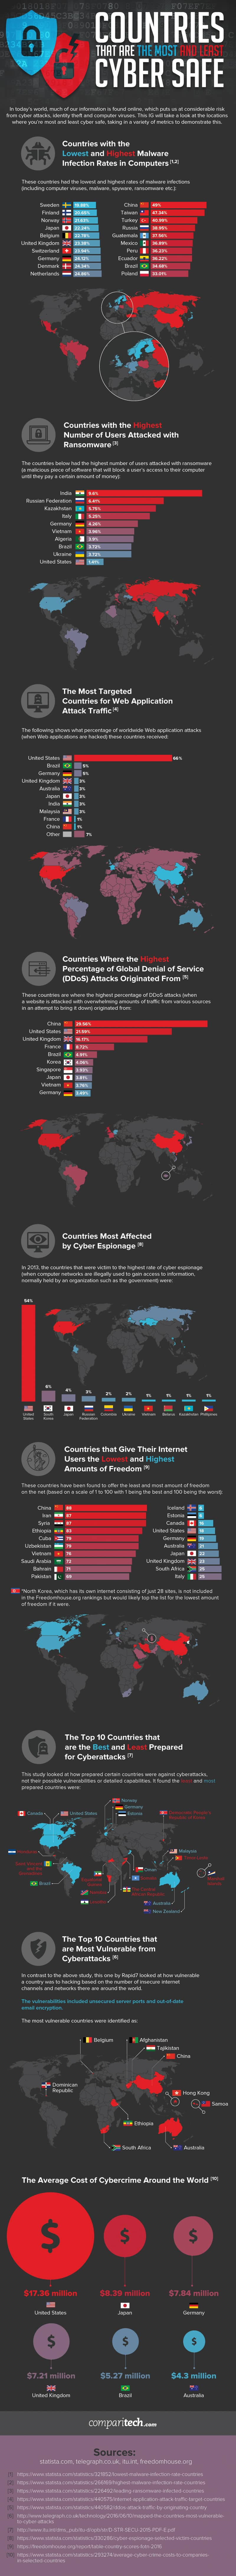 Countries-that-are-the-Most-and-Least-Cyber-Safe-final-1-2bca49da41a38ce59f93e662fc07c6bdb4ef6157